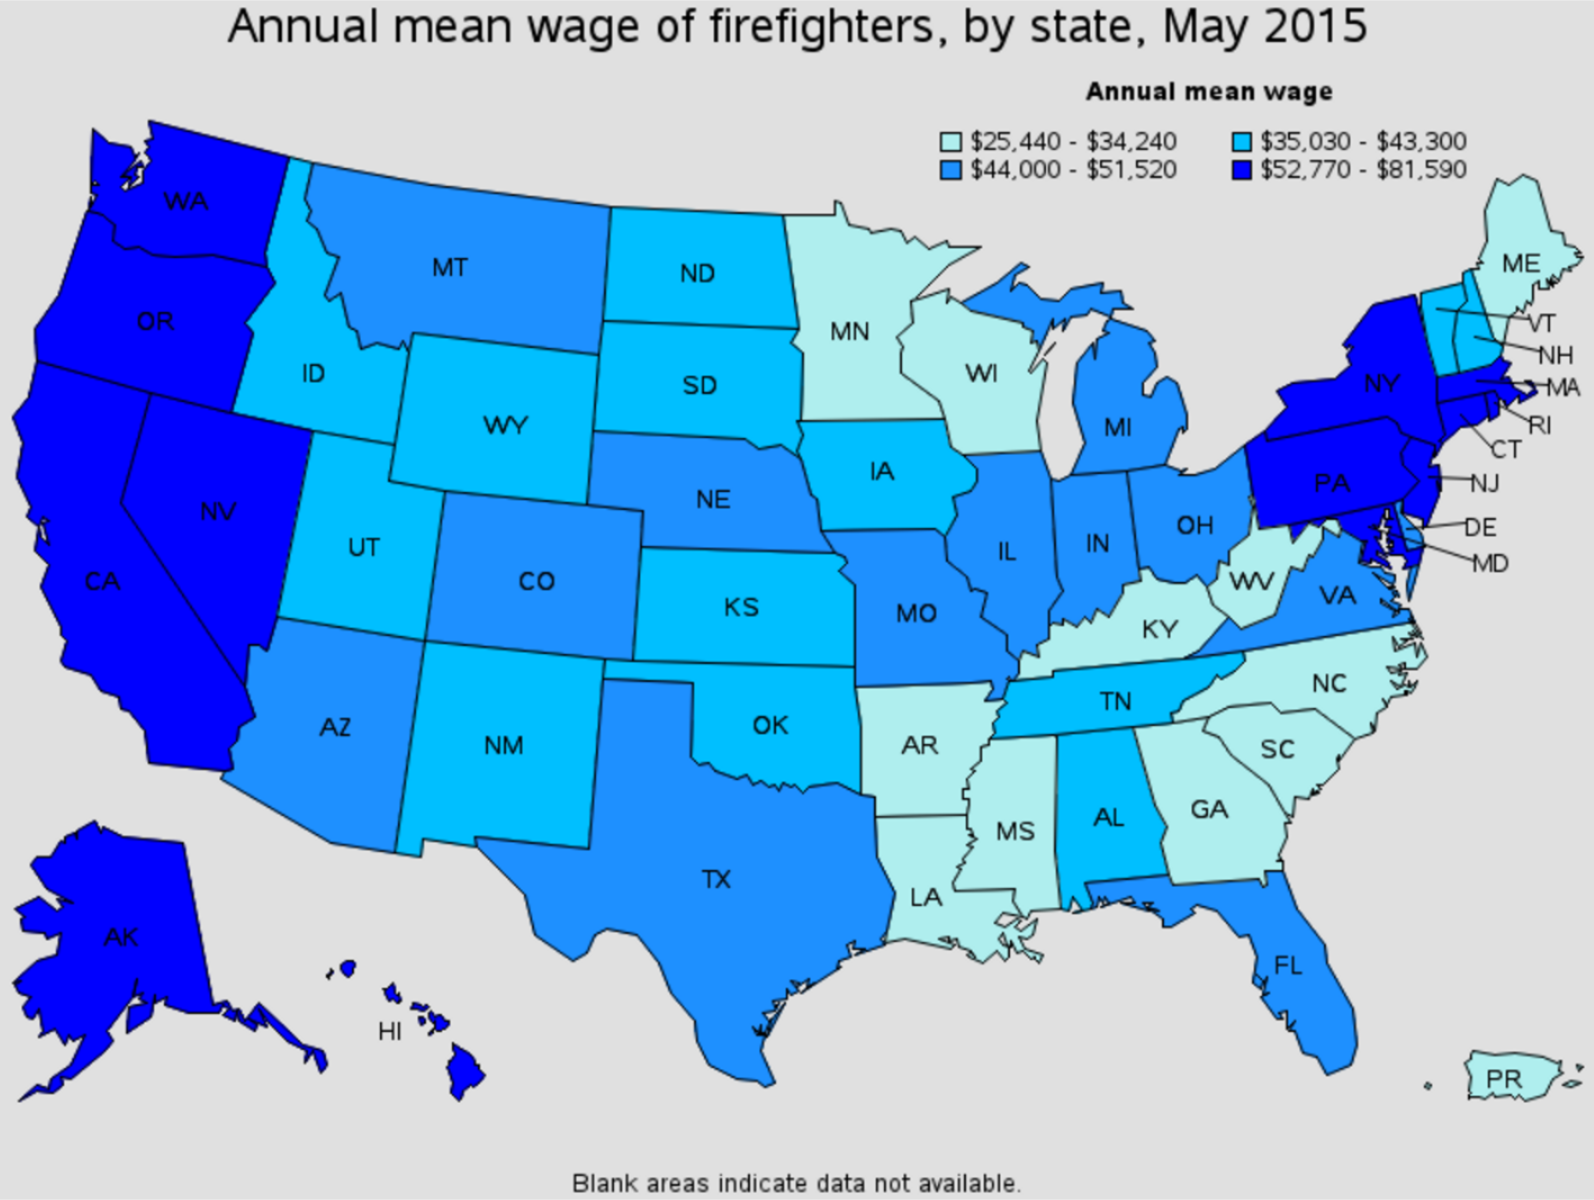 firefighter average salary by state Baton Rouge Louisiana